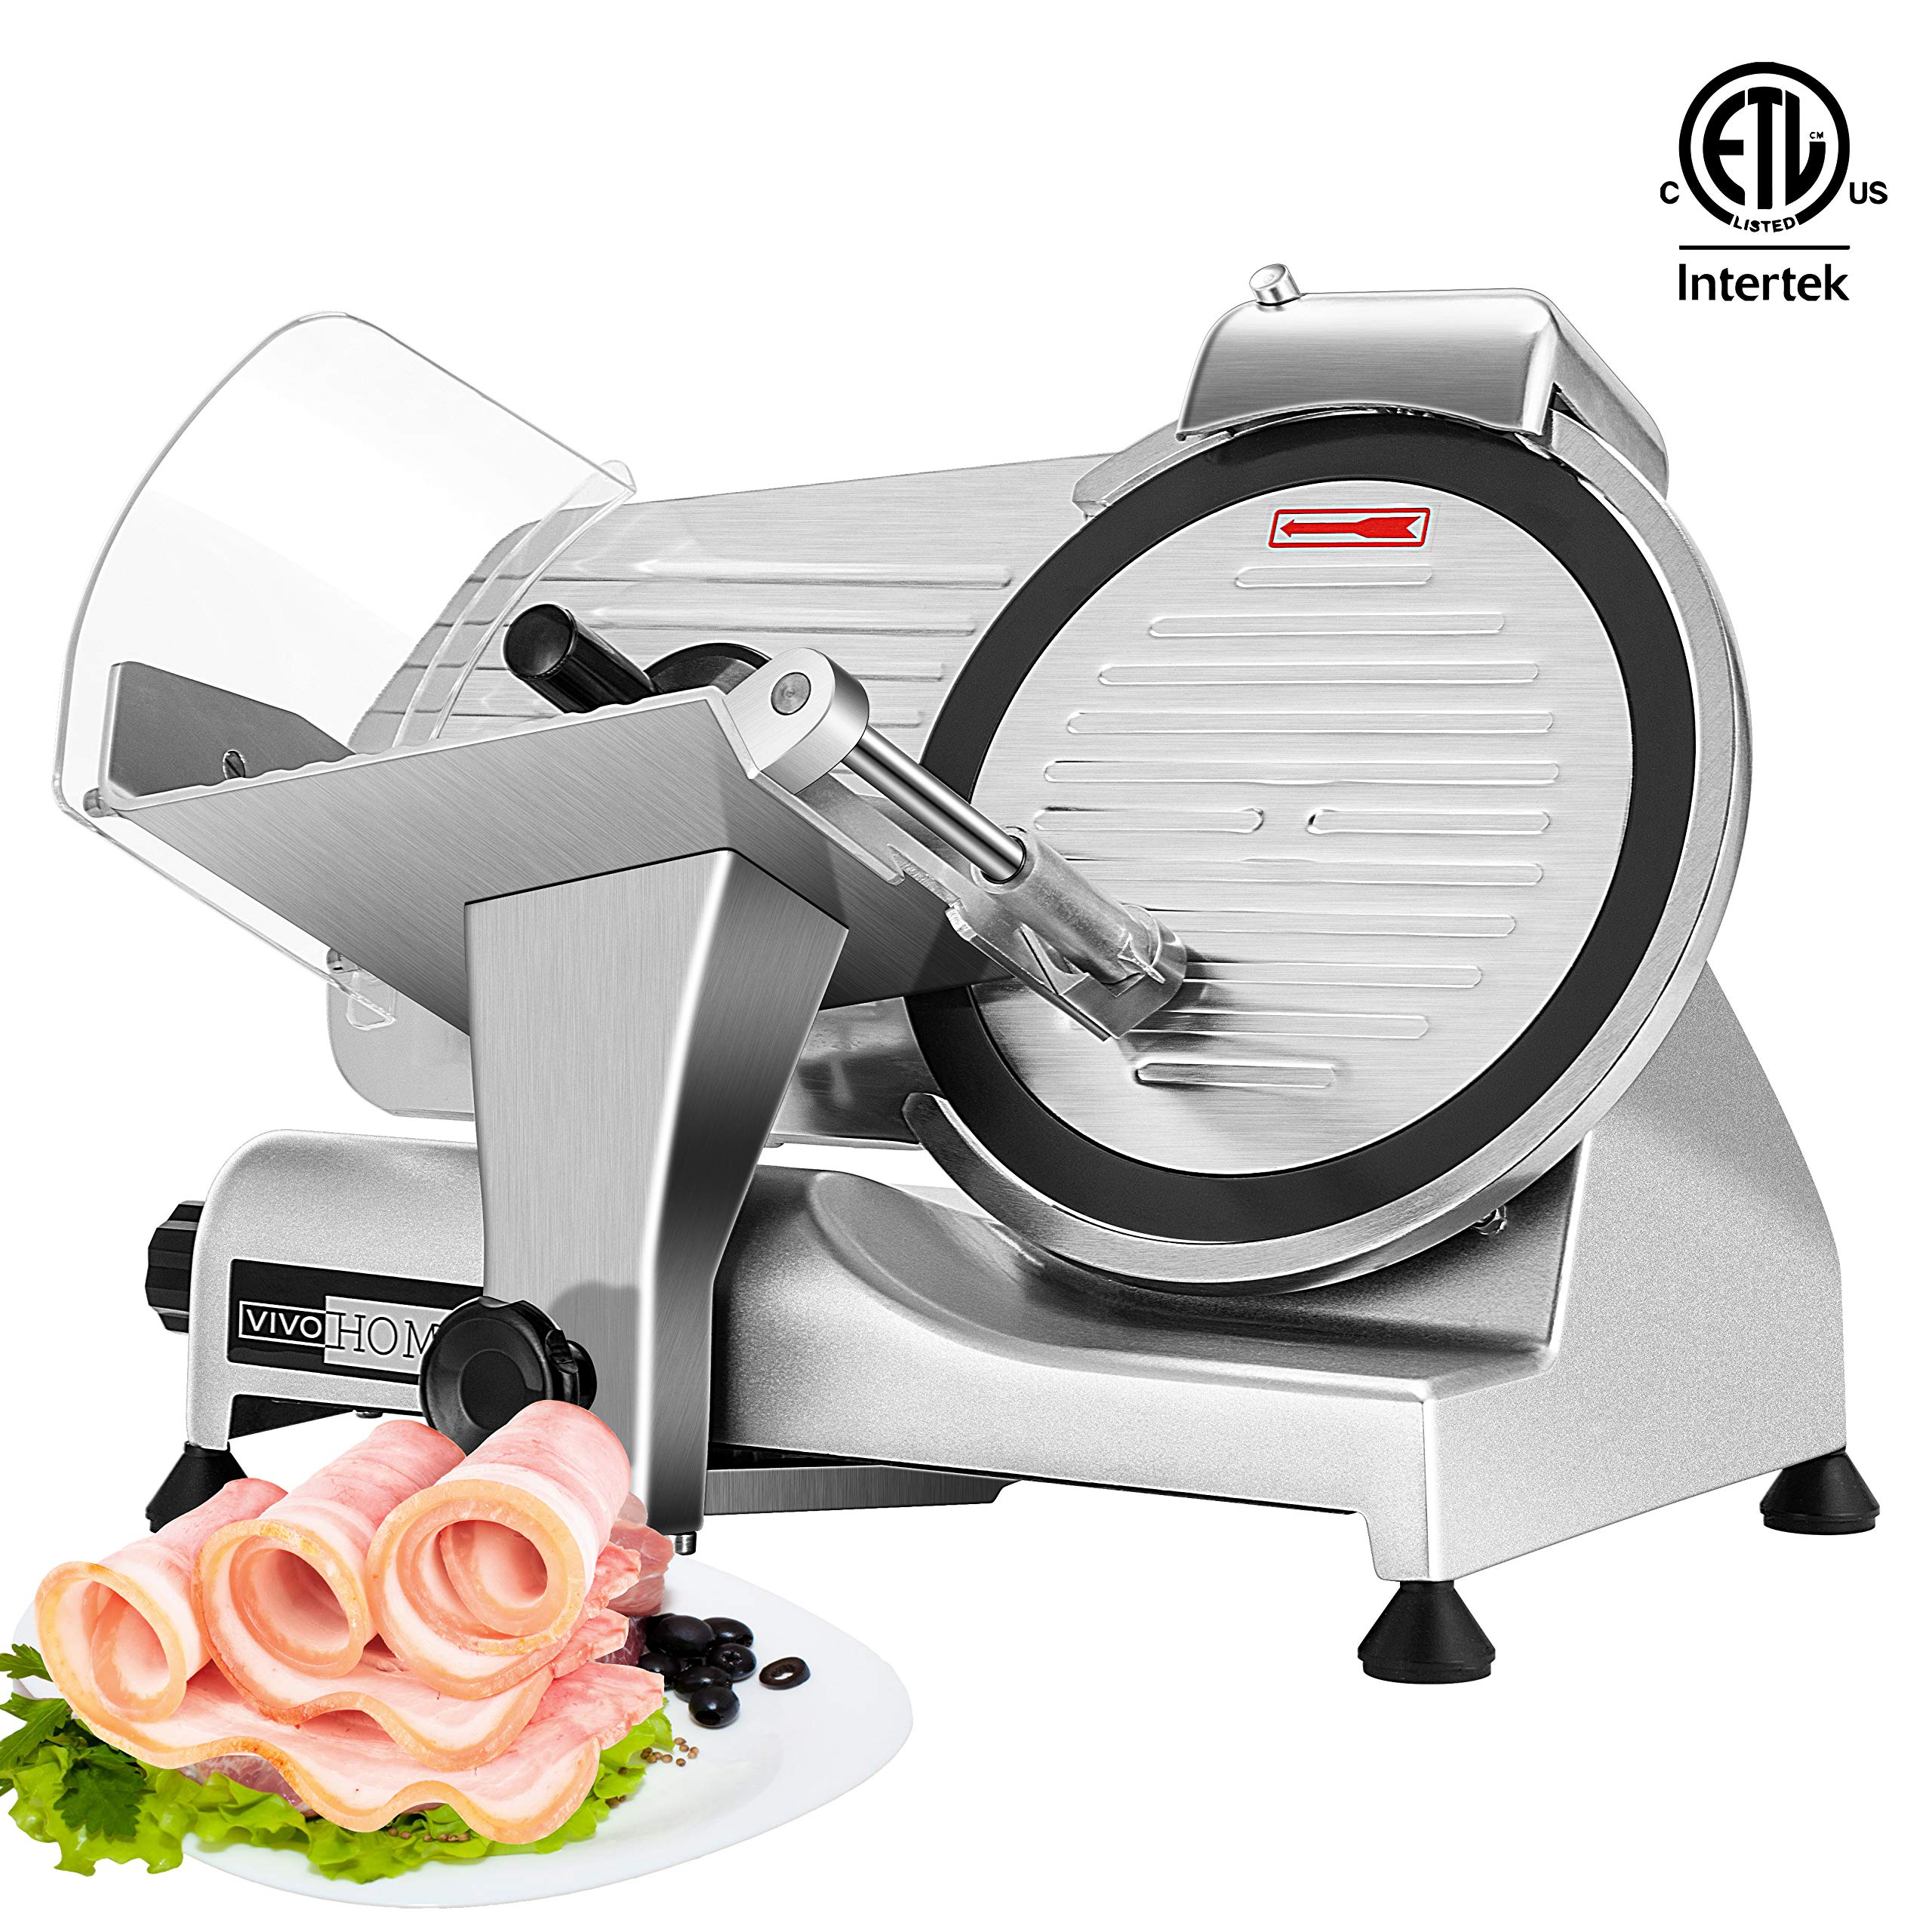 VIVOHOME 110V 320W 10 Inch Heavy Duty Stainless Steel Electric Meat Slicer Machine for Home and Commercial Use ETL Listed by VIVOHOME